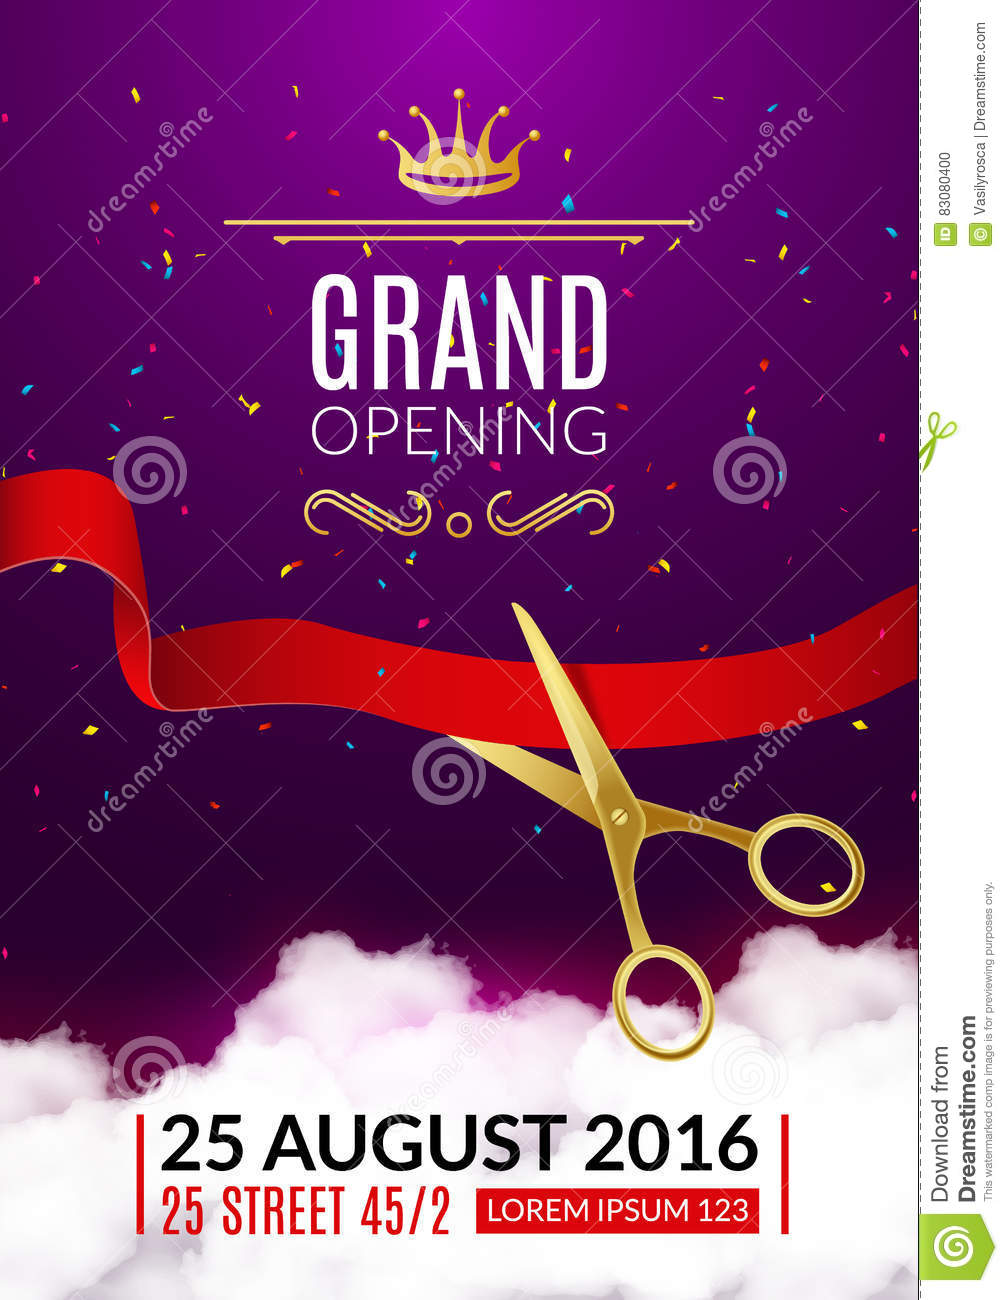 grand opening invitation card grand opening event invitation flyer